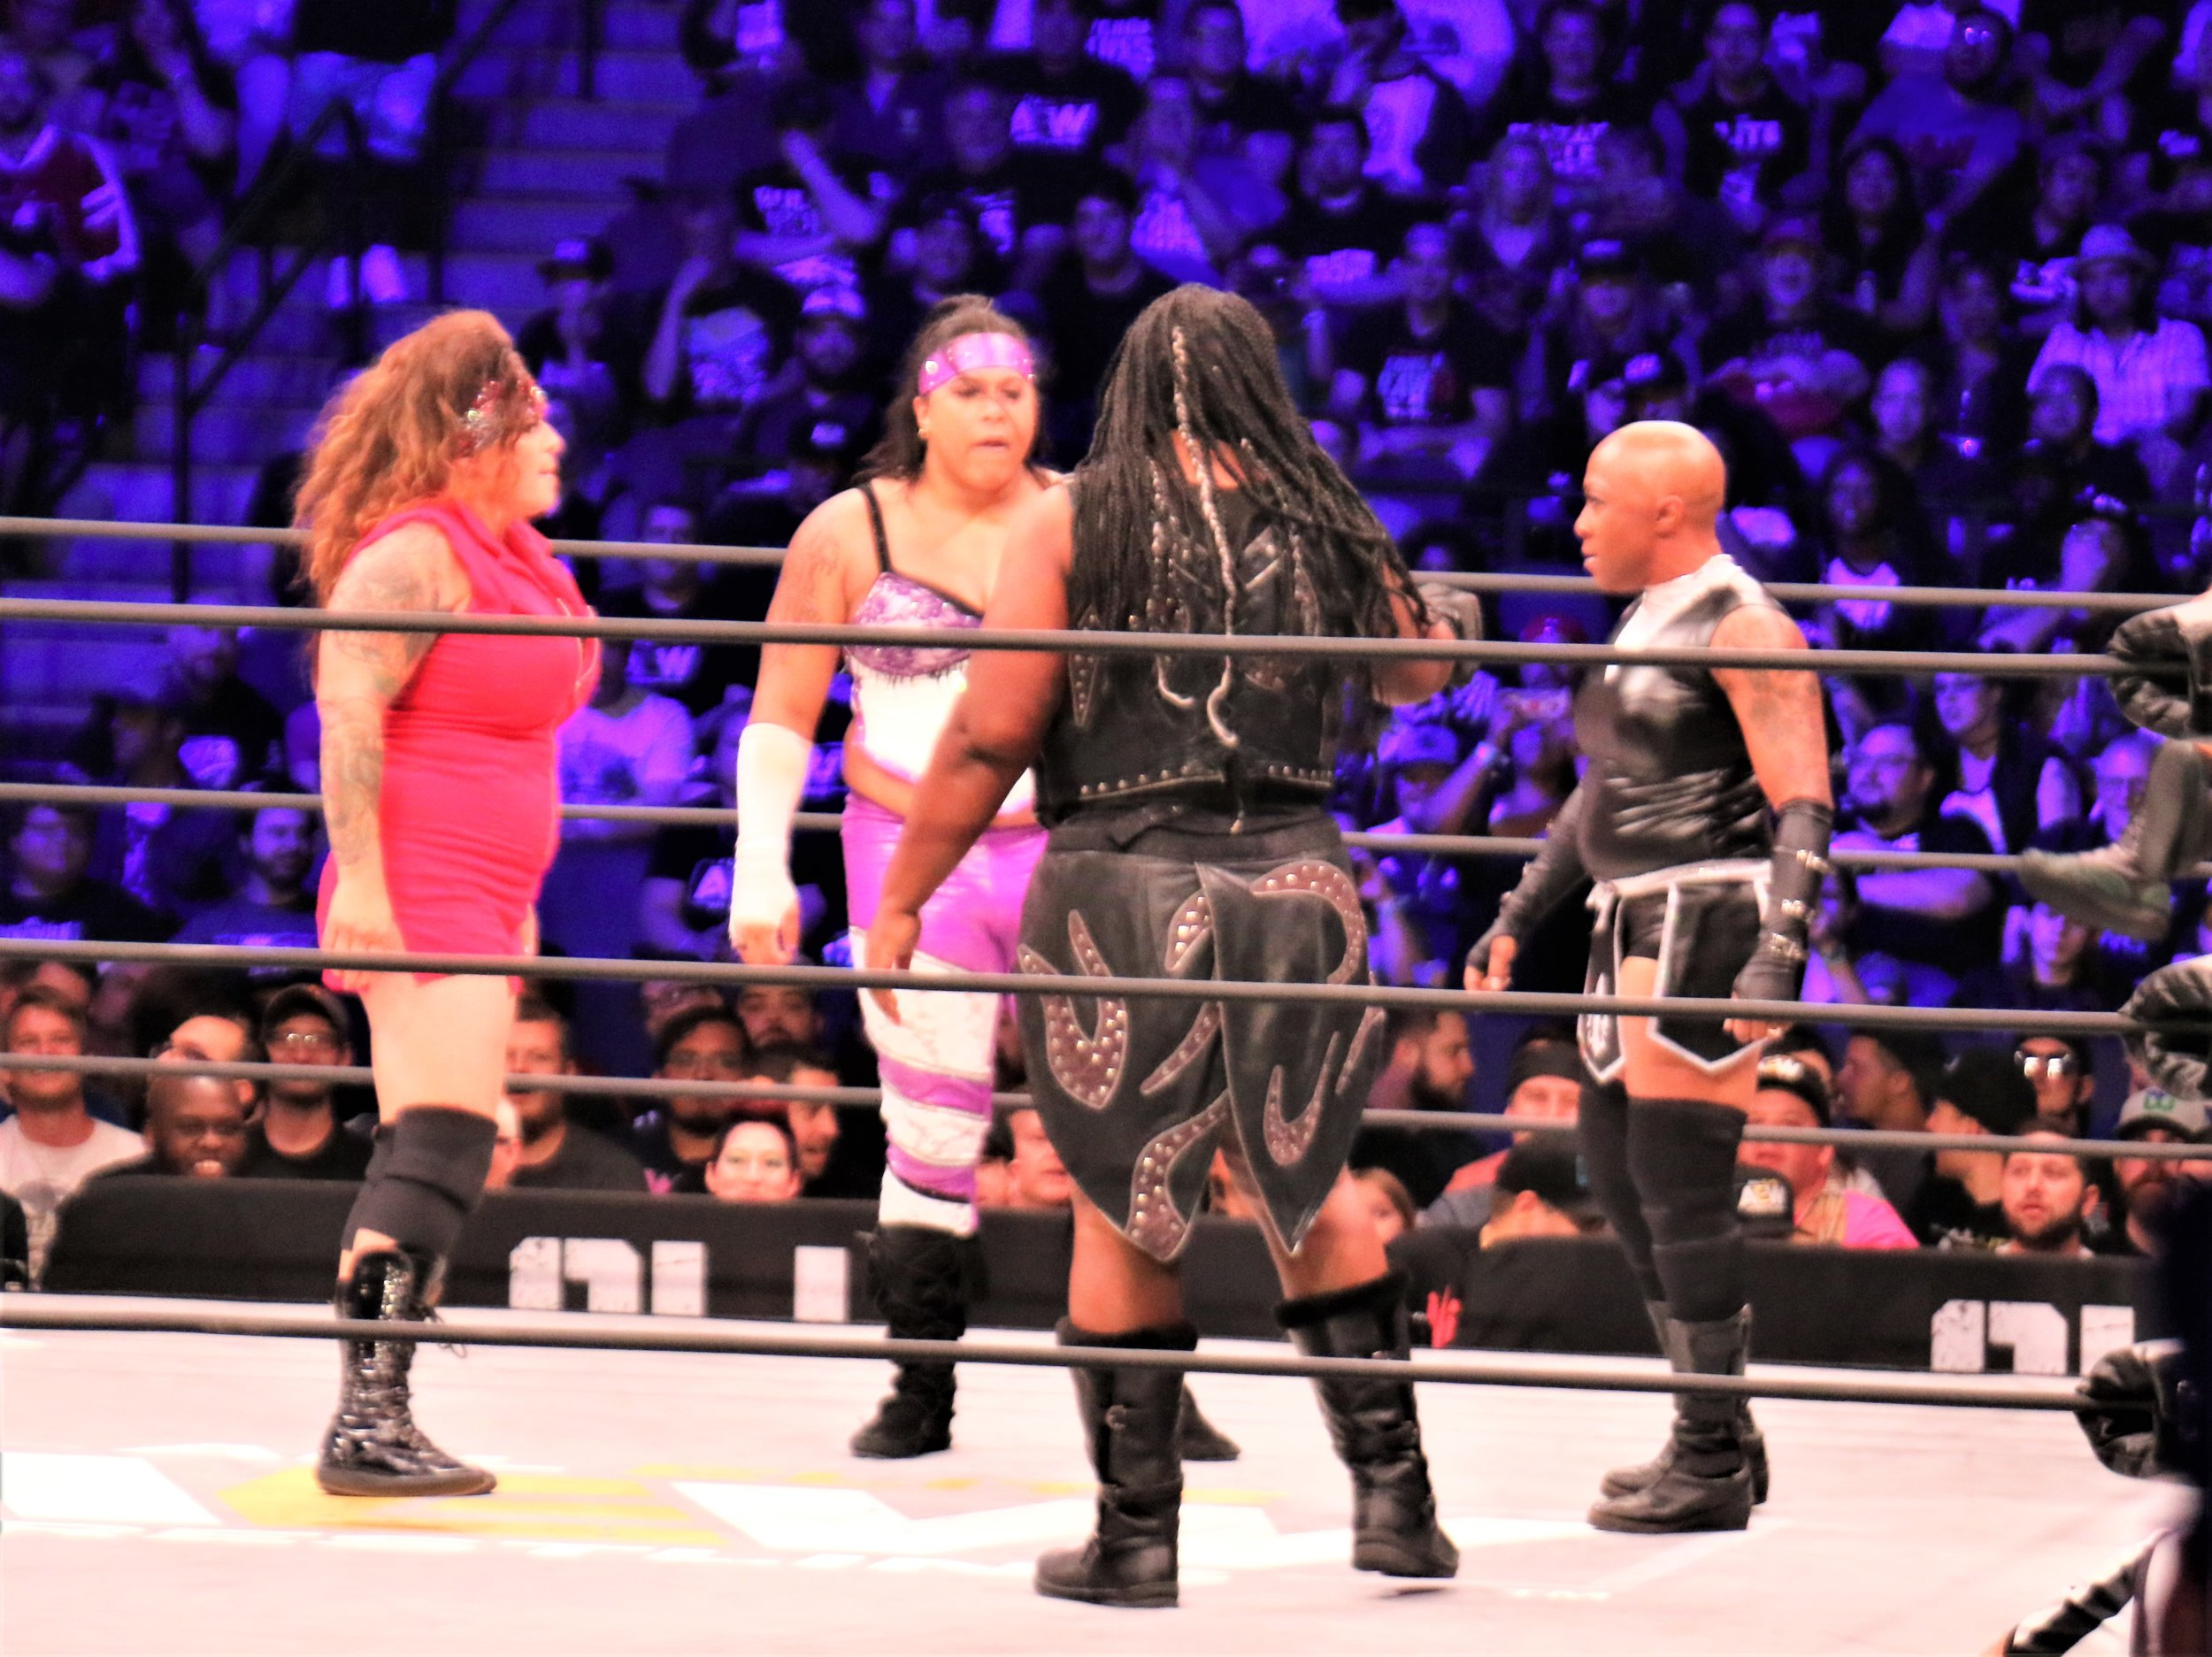 Four-woman face-off with ODB, from left, Nyla Rose, Awesome Kong and Jazz during the Casino Battle Royale.